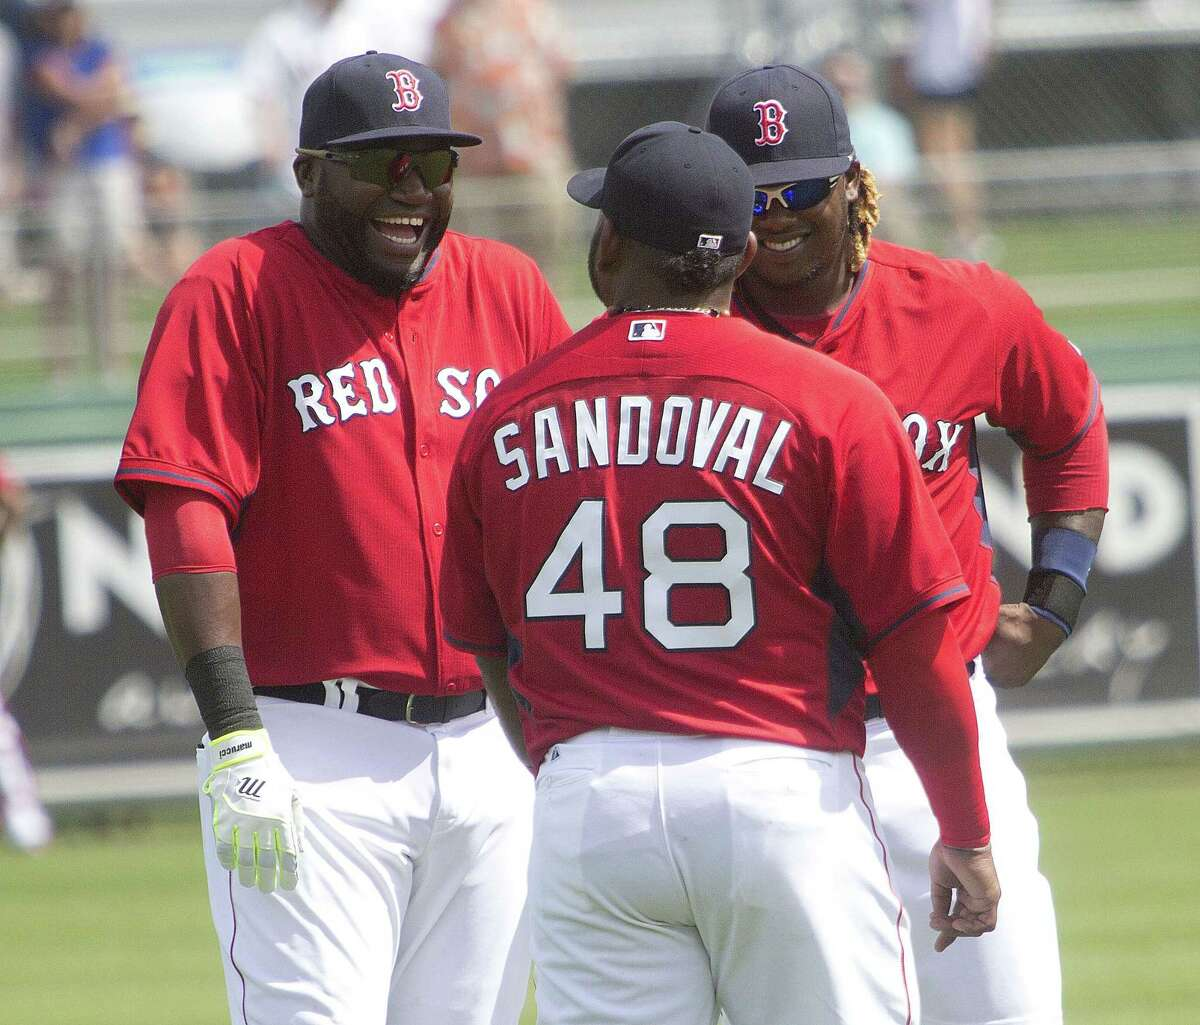 From left, Red Sox players David Ortiz, Pablo Sandoval and Hanley Ramirez chat during Tuesday's game against Northeastern in Fort Myers, Fla. Boston beat both Northeastern and Boston College by one run.